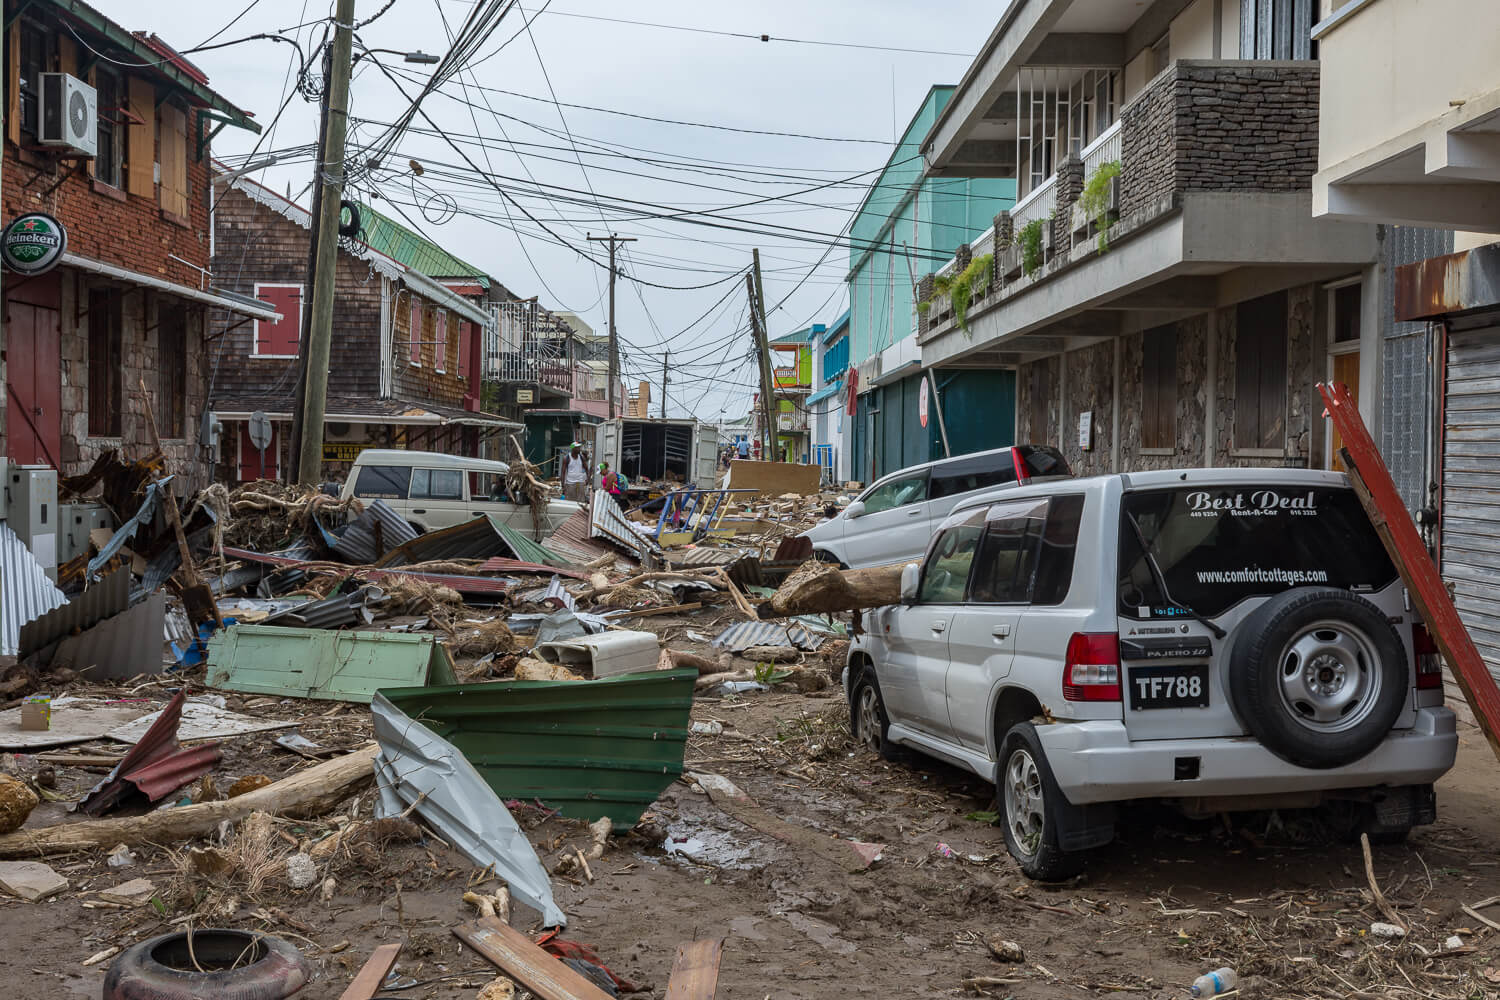 Destruction caused by Hurricane Maria, on Old Street Roseau.